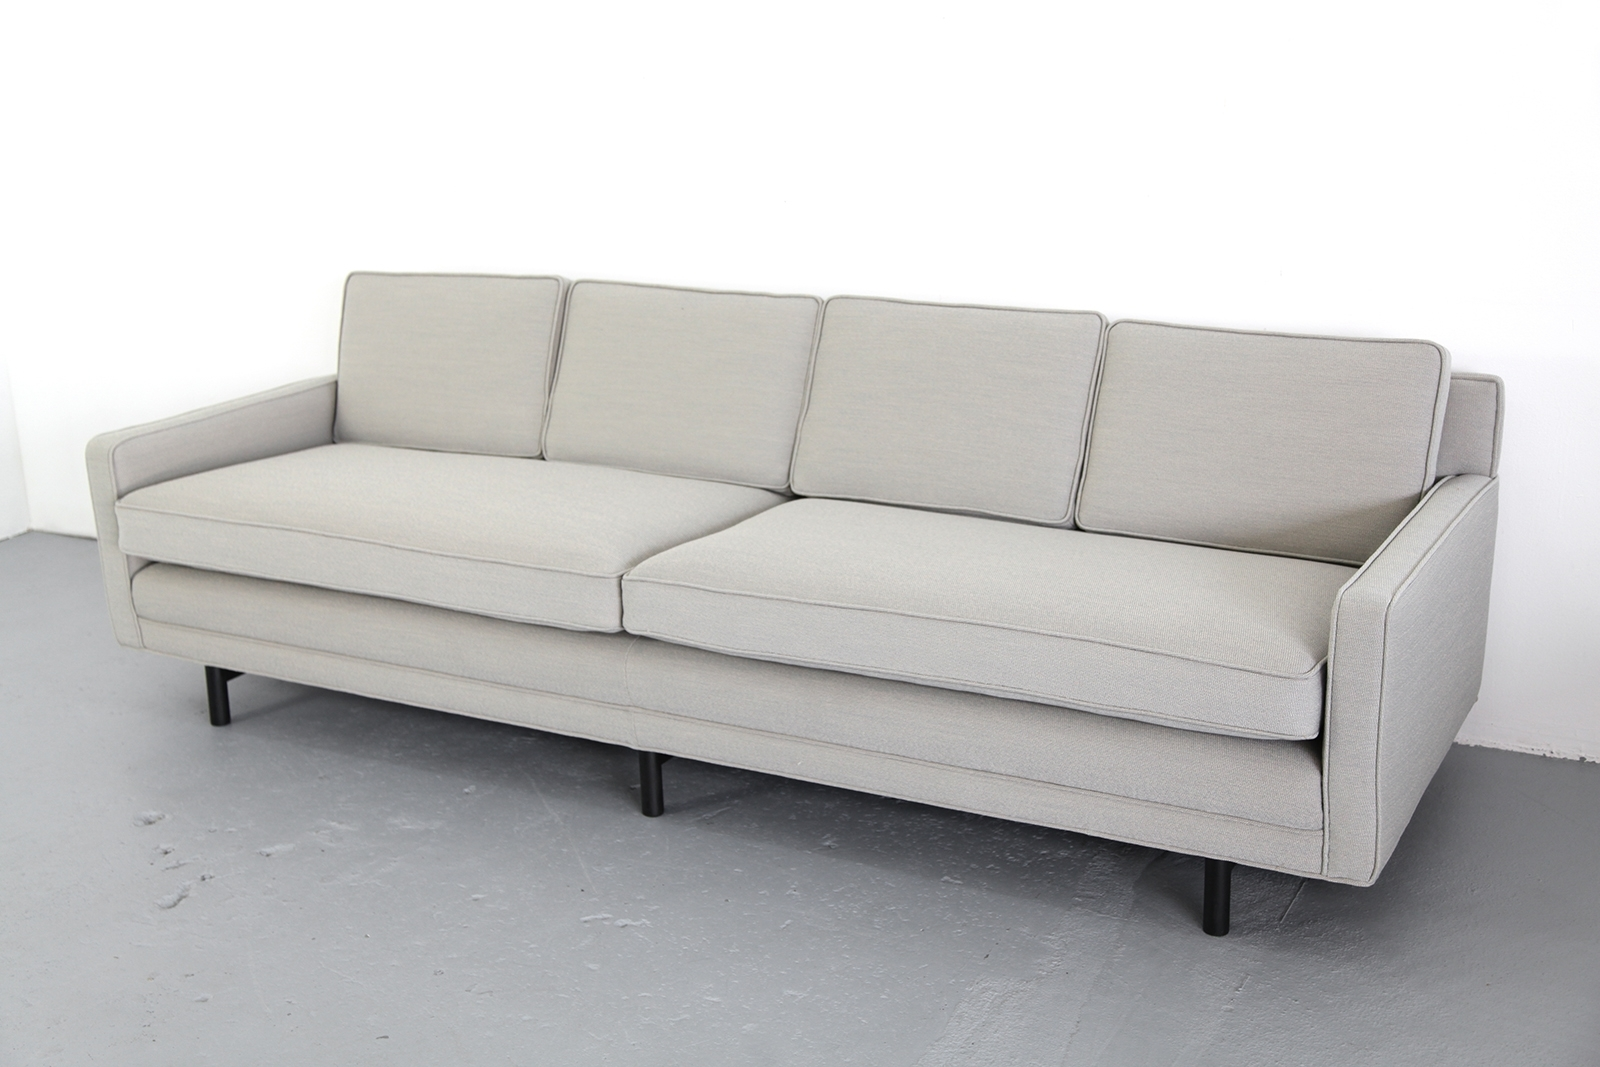 4 Seater Sofapaul Mccobb For Directional For Sale At Pamono With Regard To Trendy 4 Seater Sofas (View 6 of 20)